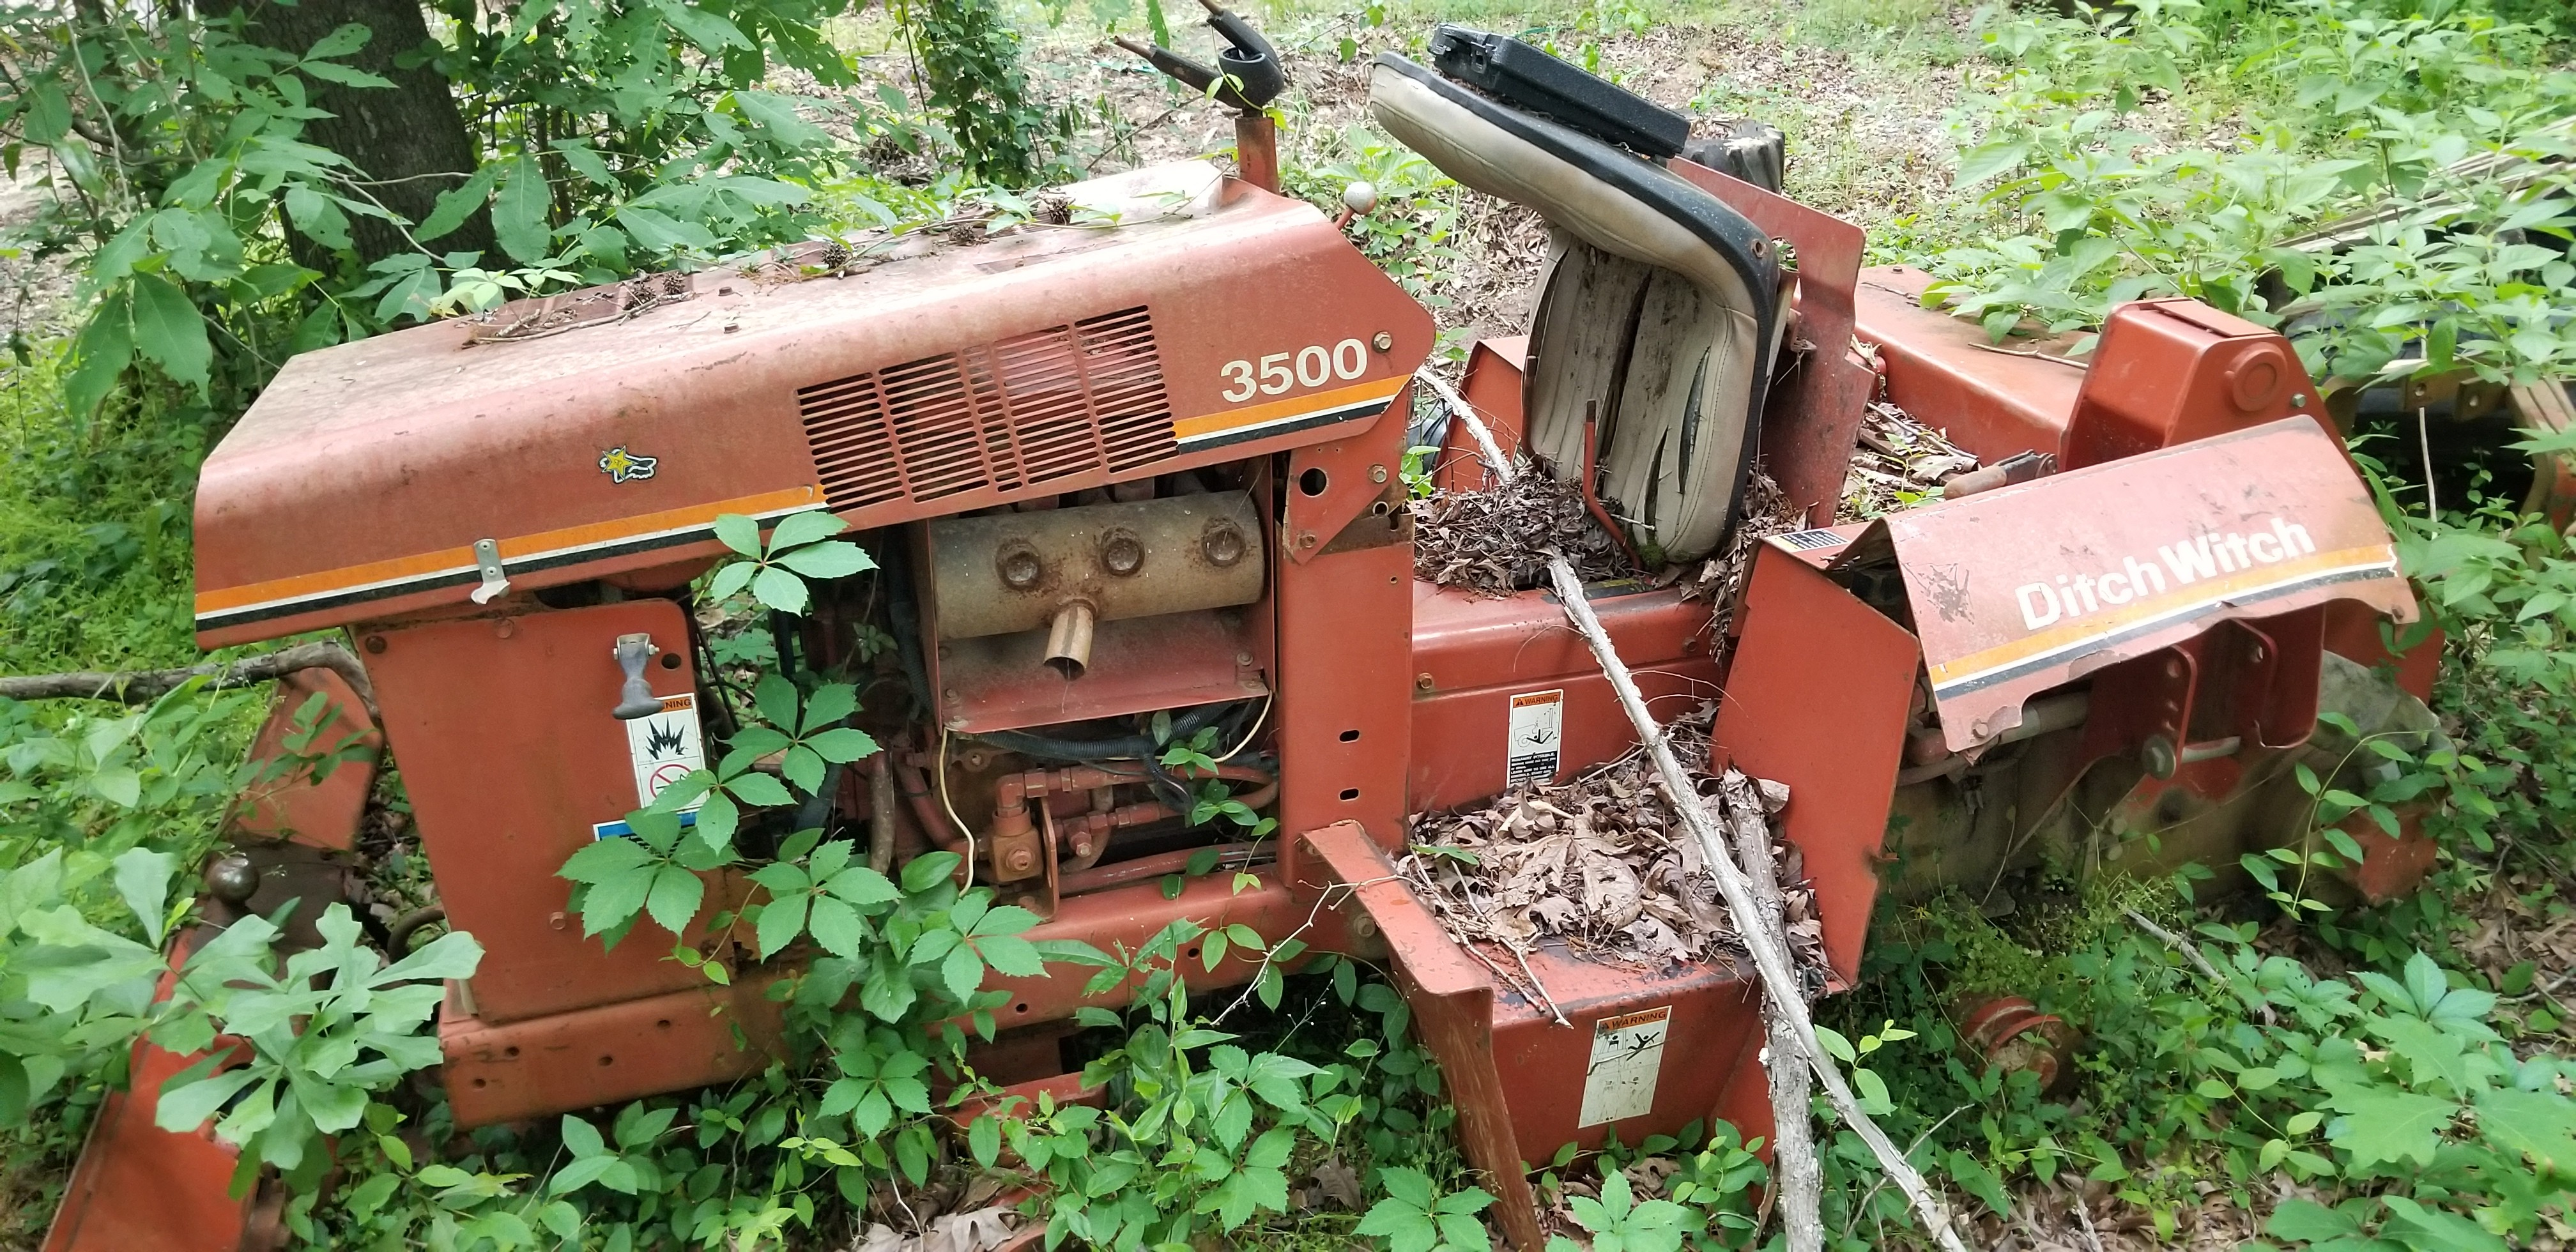 Ditch Witch, parts, salvage, junk, trencher, used, 3500